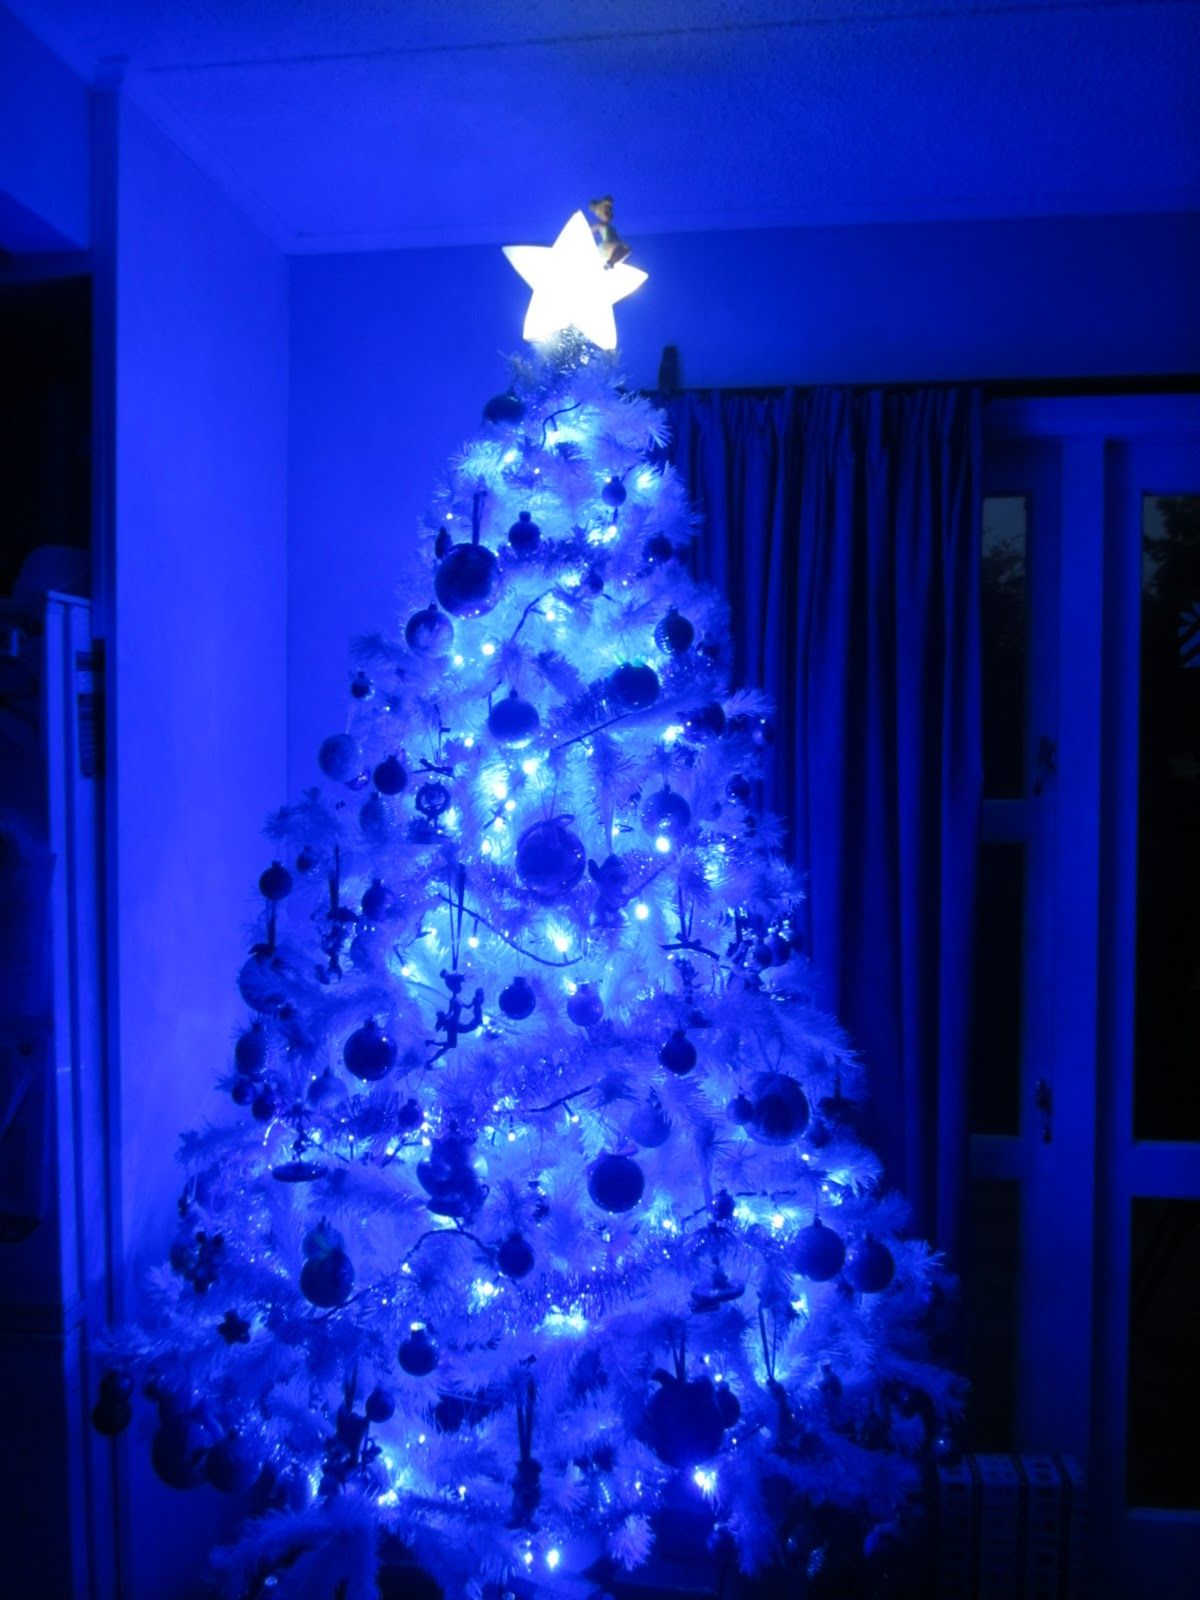 White Christmas Tree With Blue Lights.Sketch Of Blue And White Christmas Lights Interior Design